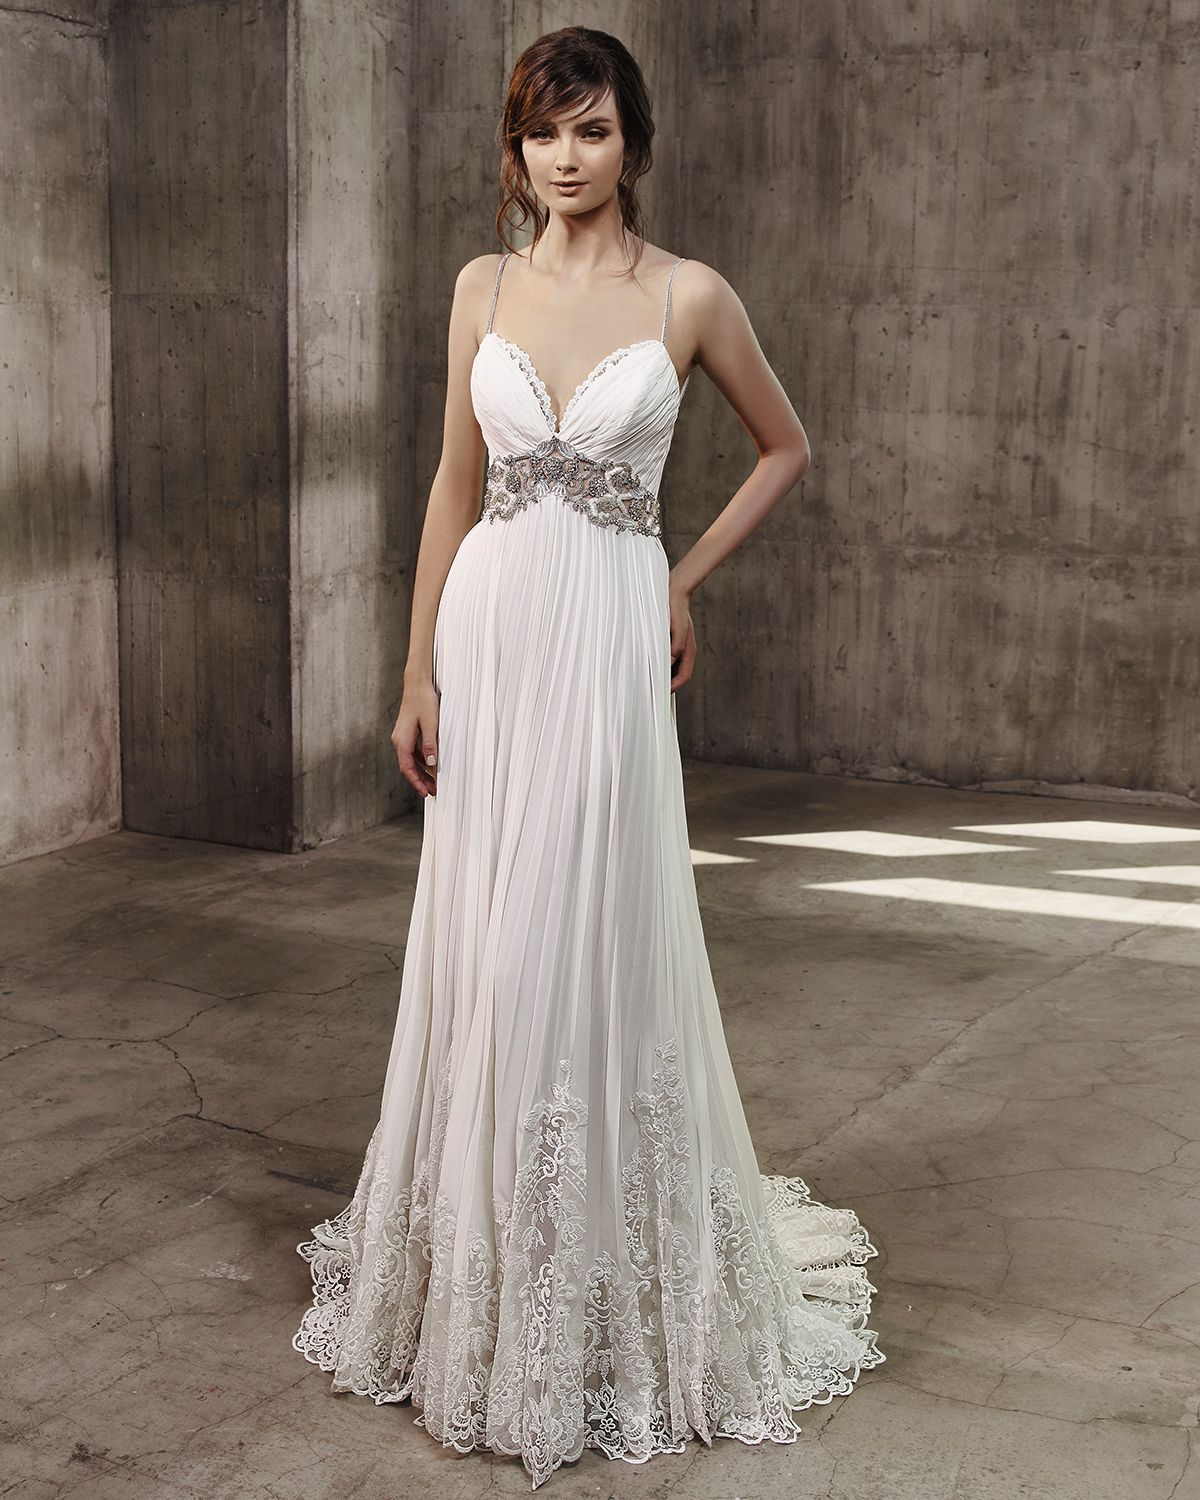 Badgley mischka wedding dress  View the Belle Badgley Mischka Bridal Collection  collection of